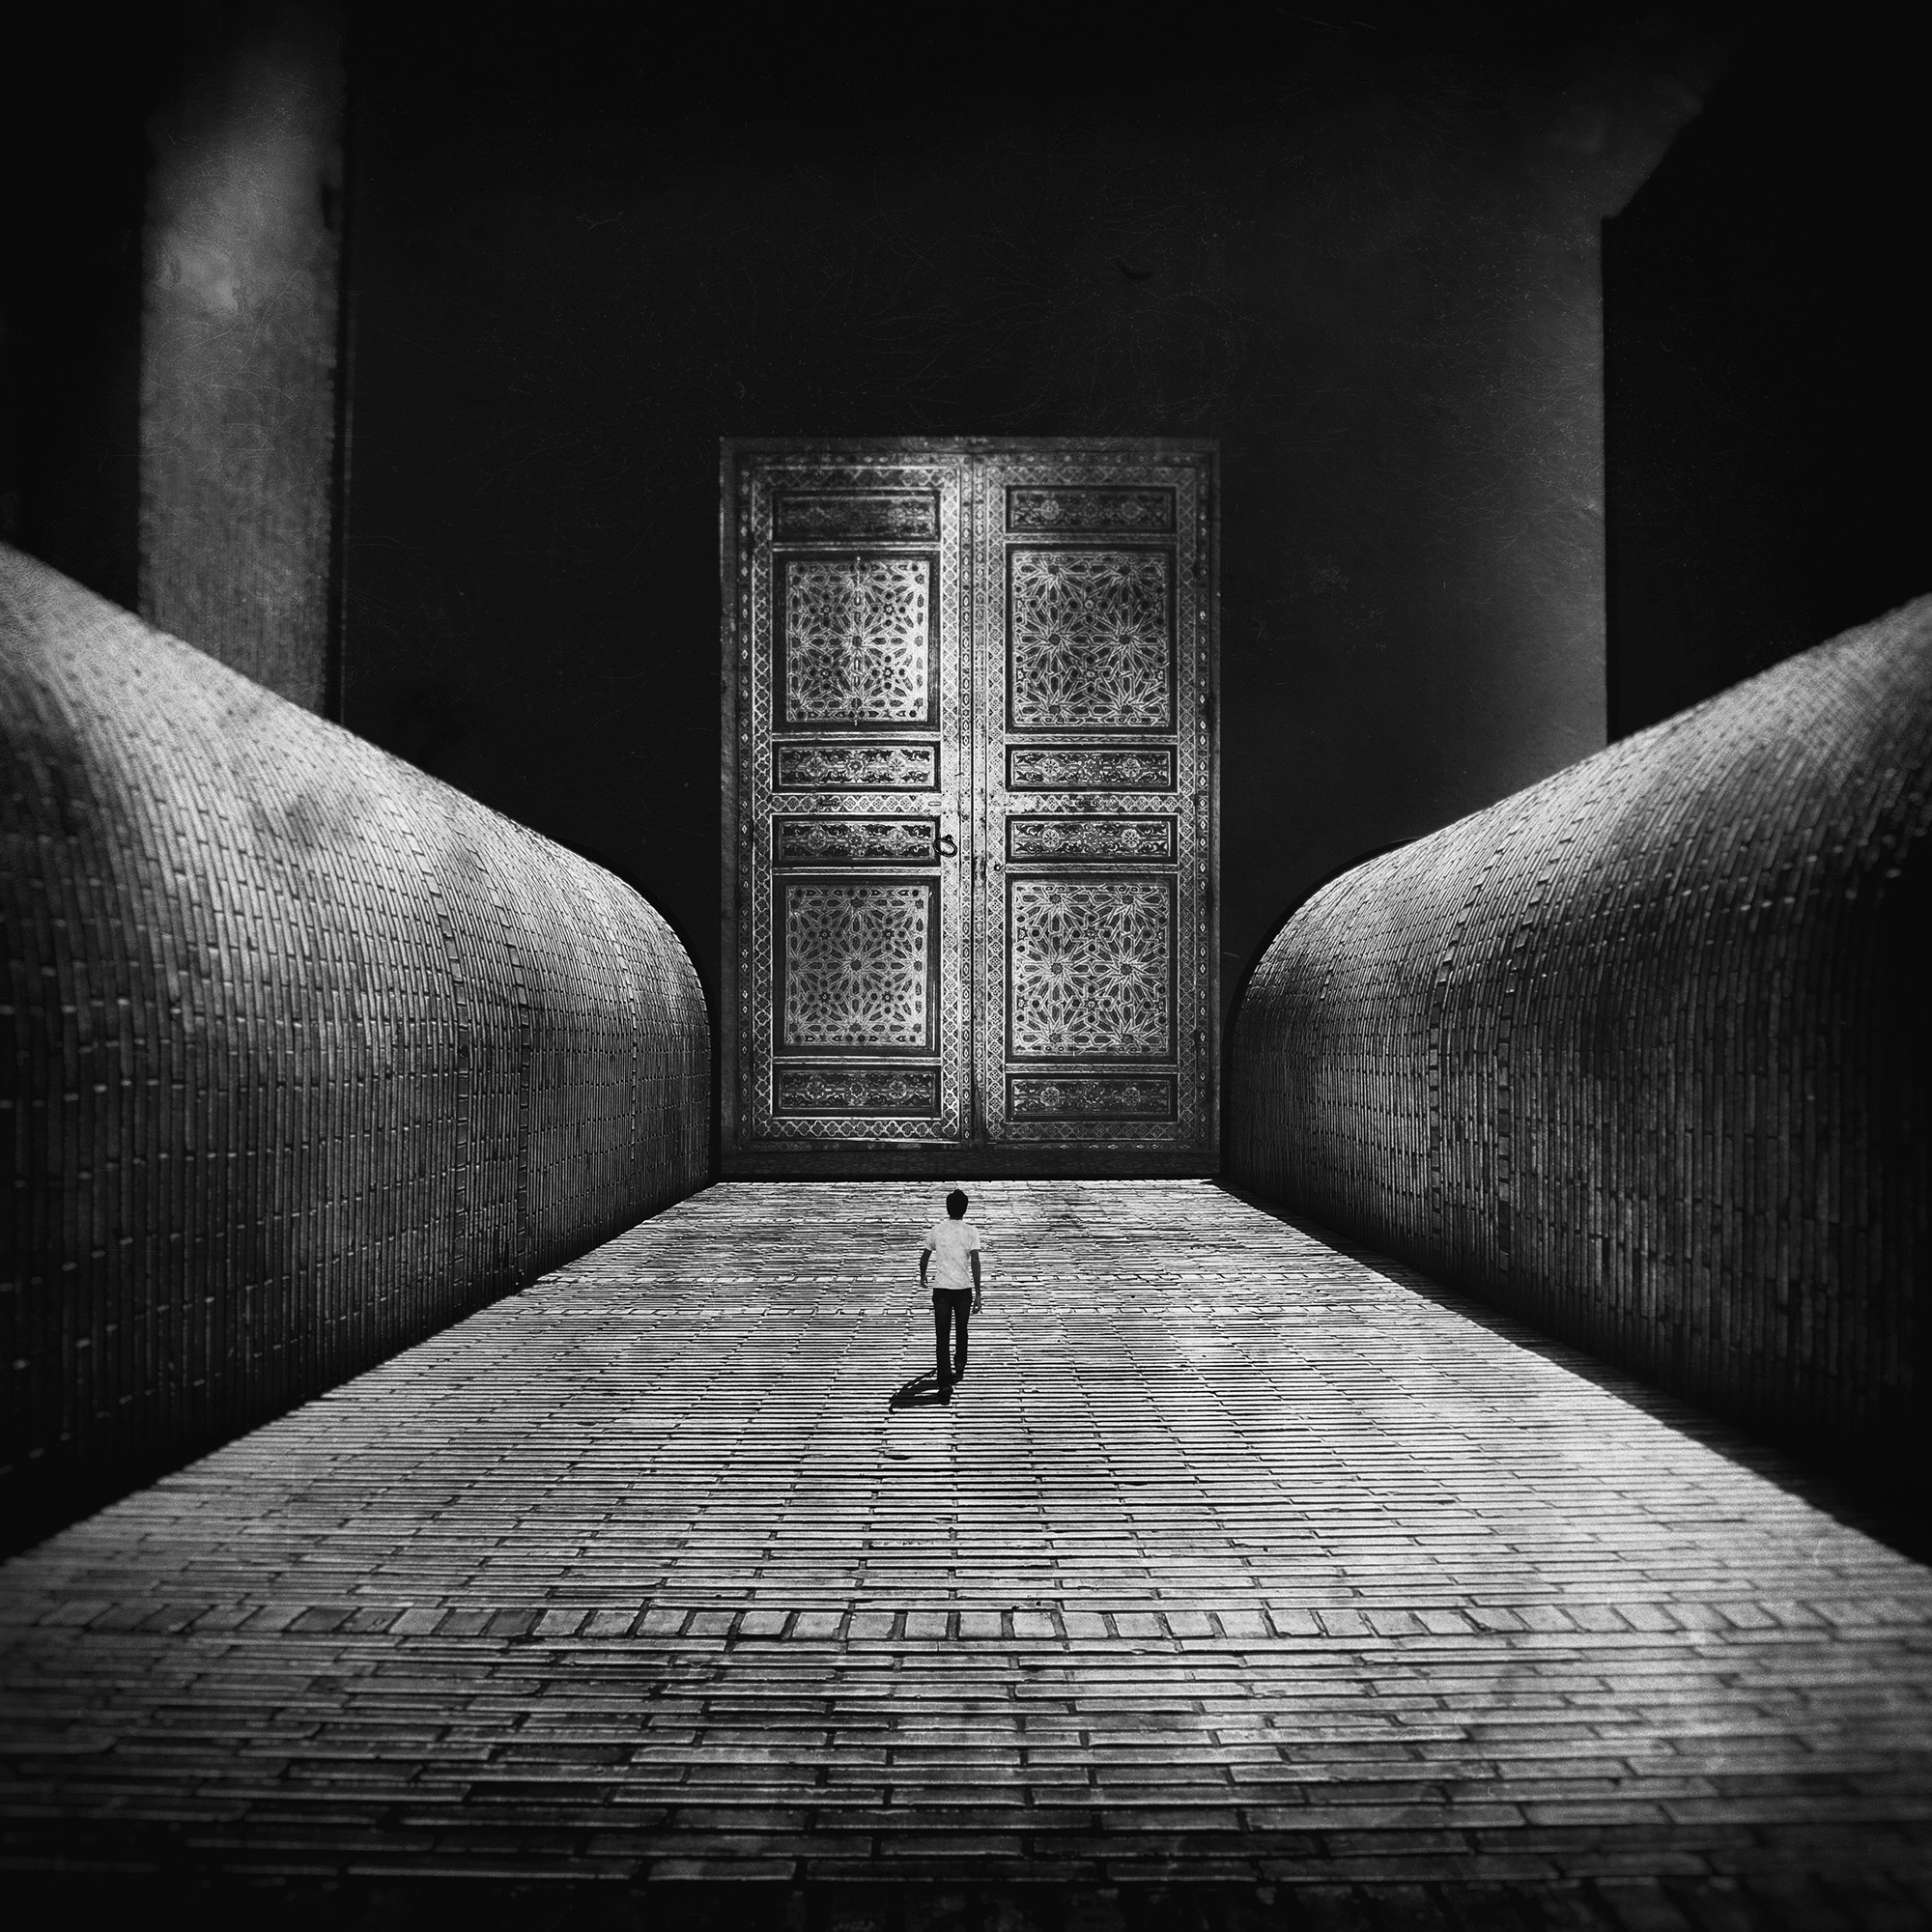 Milad_Safabakhsh_The spce in between By Milad safabakhsh (8).jpg